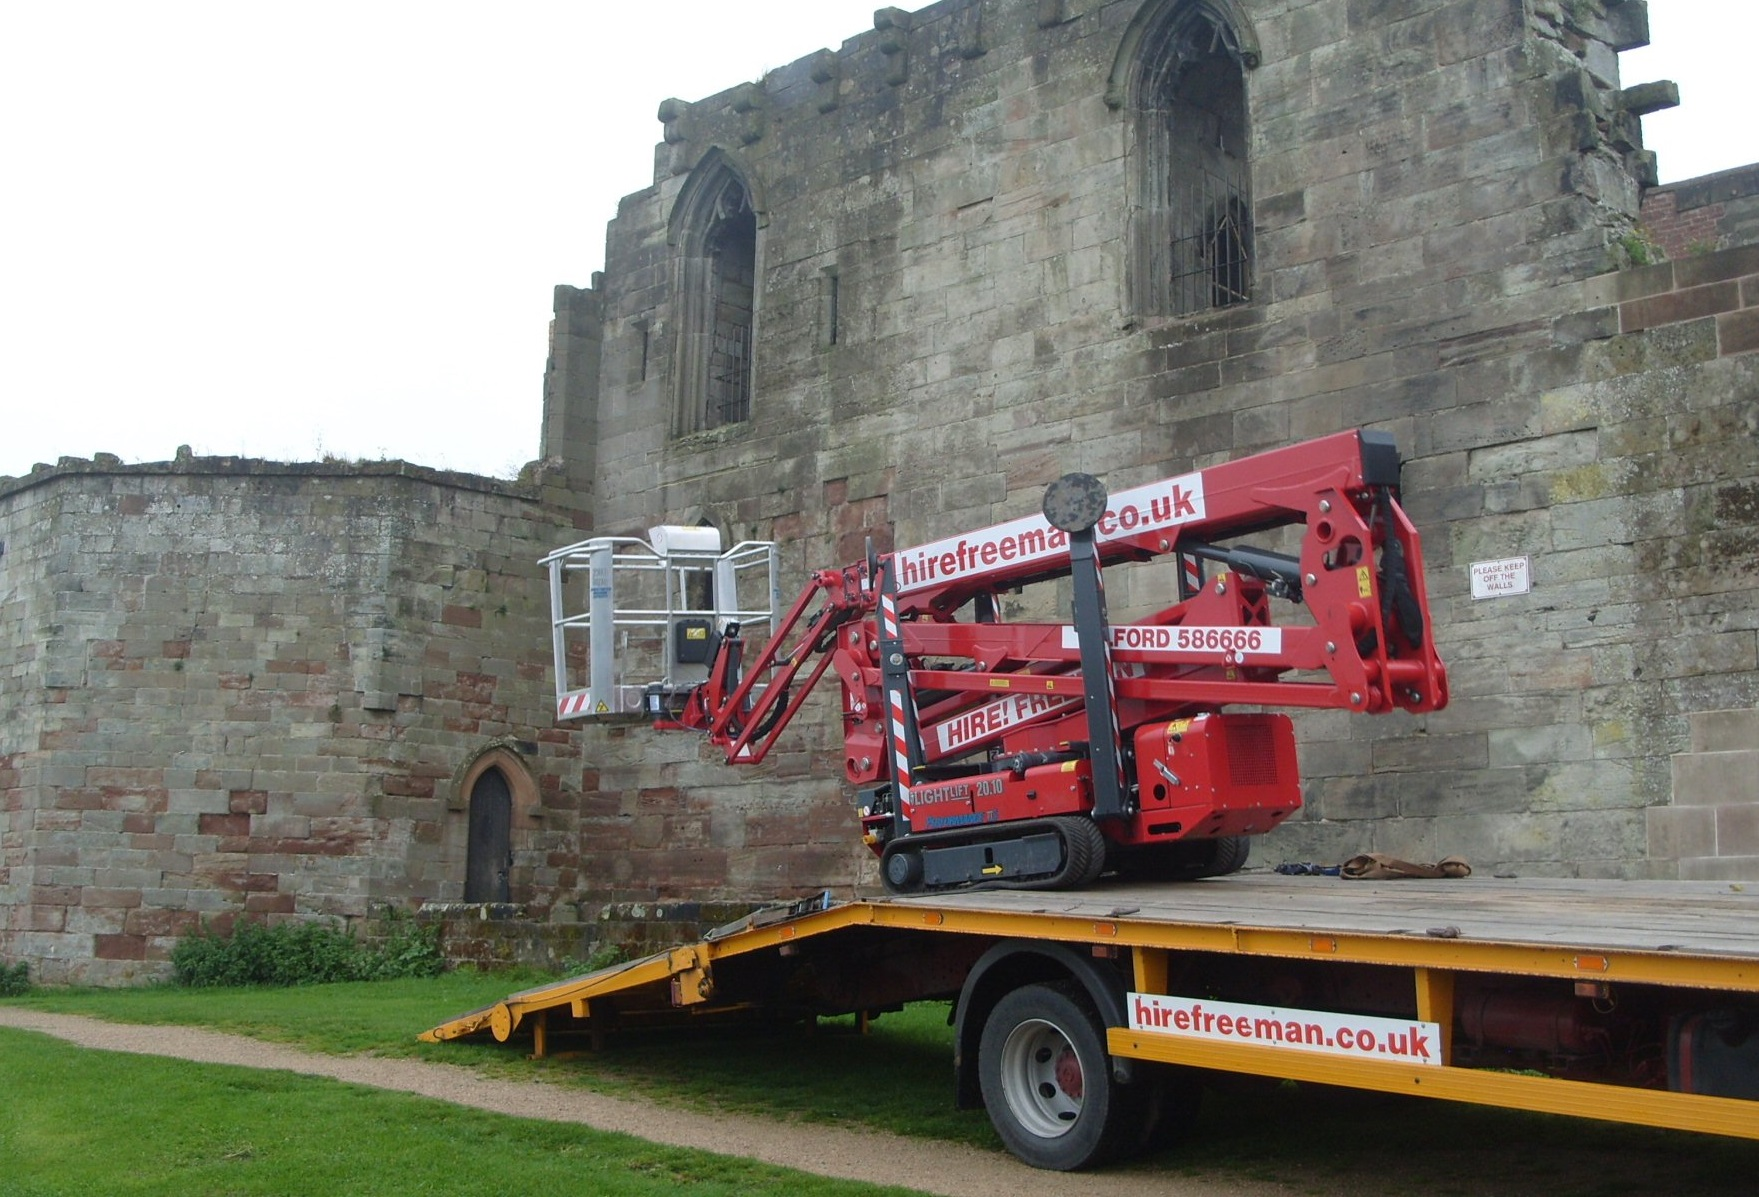 Stafford's Historic Castle Uses Hinowa Boom under tricky conditions